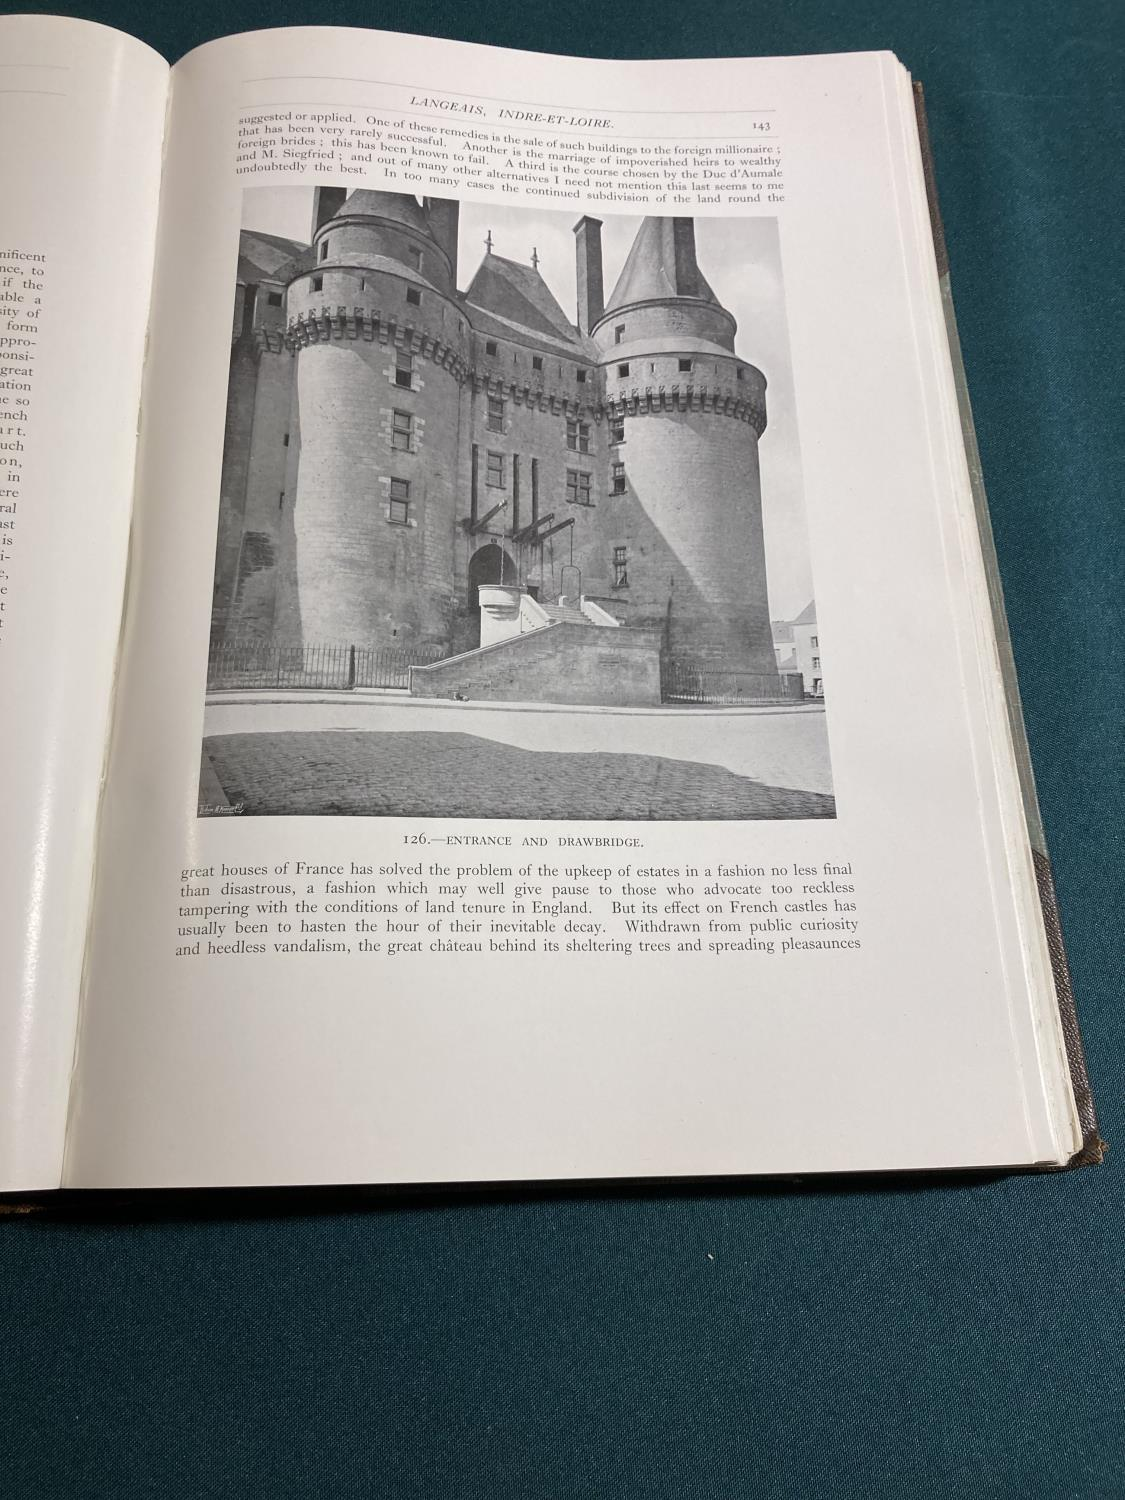 Bolton, Arthur T. The Architecture of Robert and James Adam, 2 volumes, first edition, plates, - Image 6 of 22